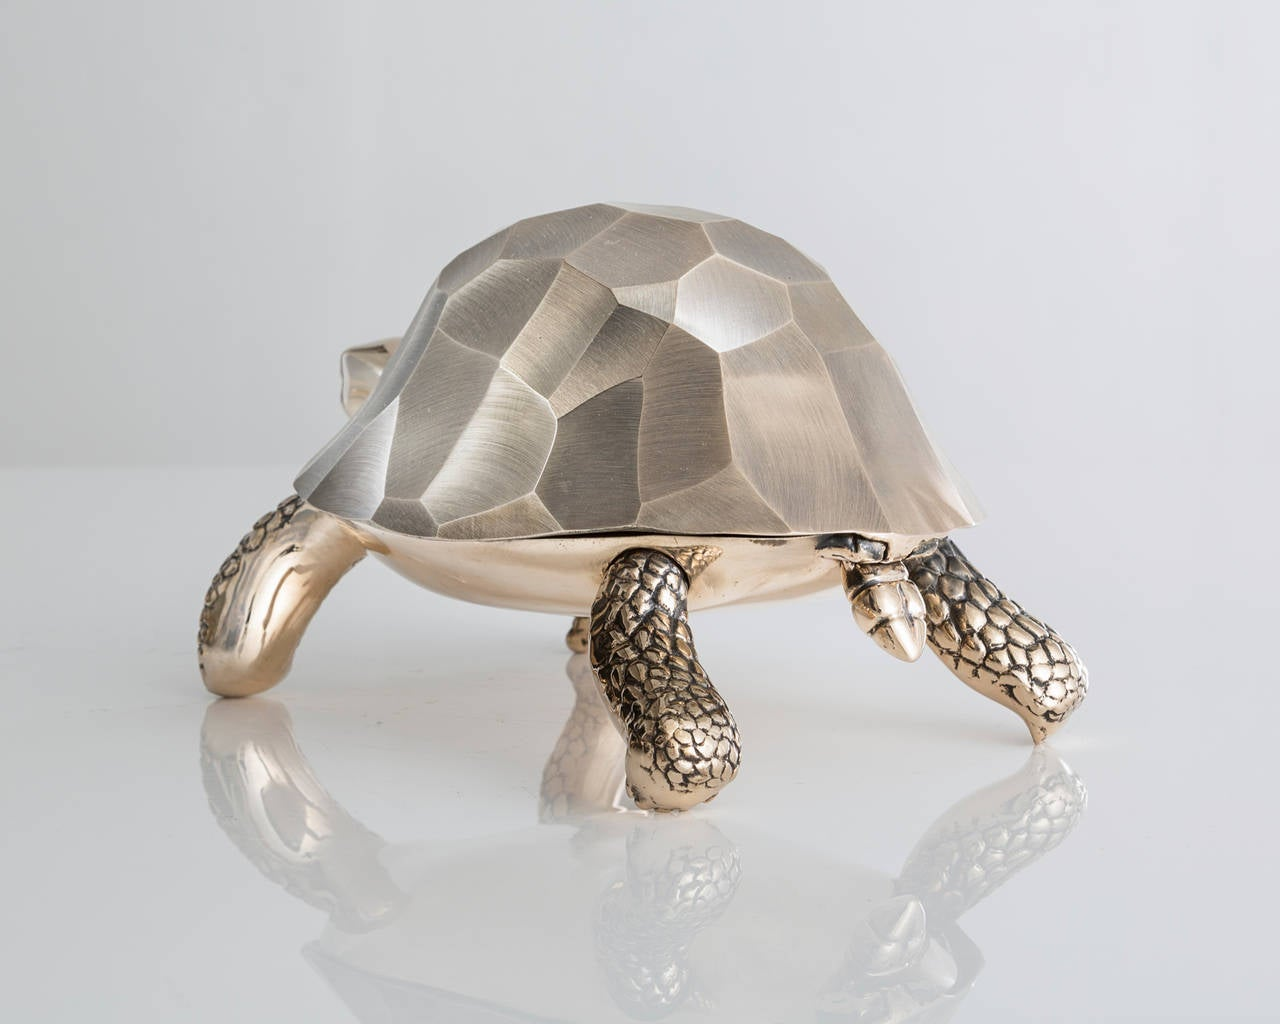 SM5637.  Unique turtle box in polished bronze. Designed and made by David Wiseman, USA, 2014. Edition of 12 and two artist proofs. Signed and numbered, DW11.